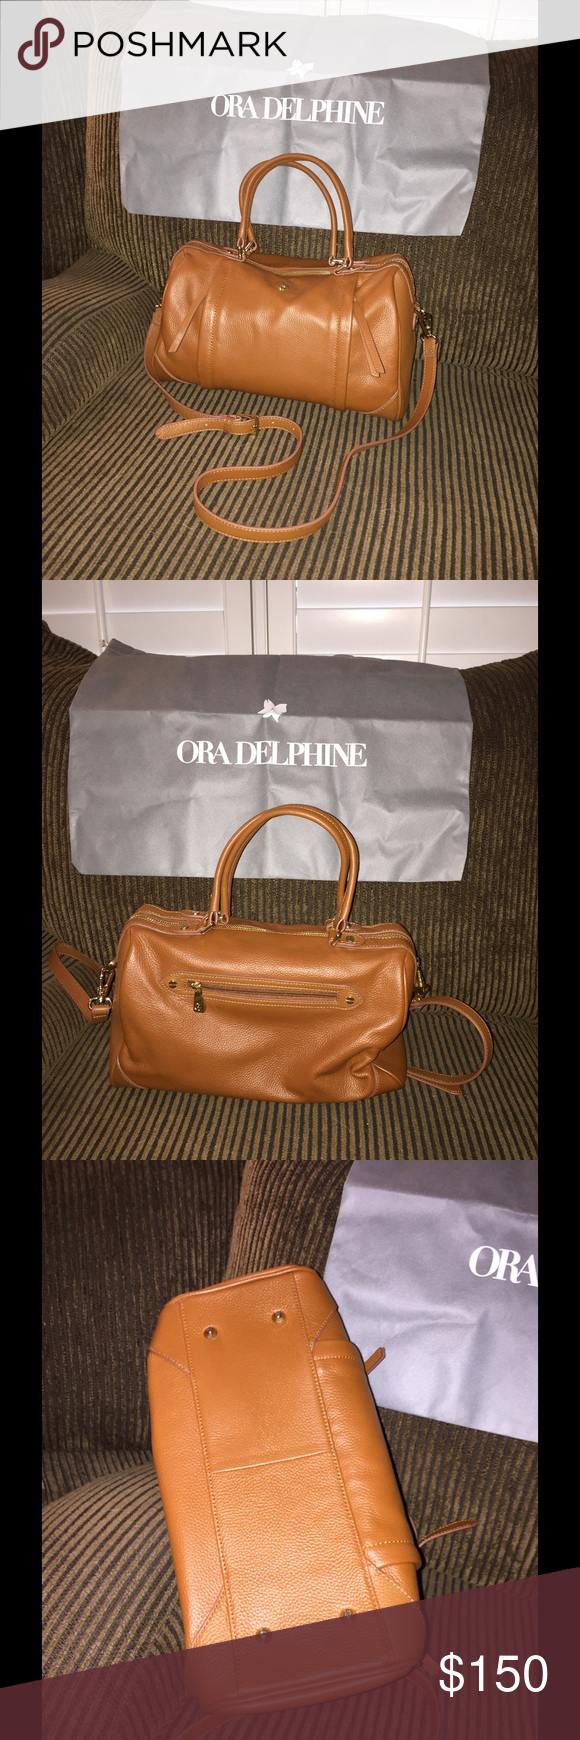 """Ora Delphine Satchel Soft Caramel colored leather bag. Used once, comes with dust bag and shoulder strap. Has gold tone hardware. Has 2 zip pockets on the front and 1 zip pocket on the back. Inside has 1 large zip pocket and 2 smaller pockets for cell, etc. 14"""" long x 8 1/2"""" tall x 4"""" across bottom. Handle drop of 5 1/2"""" and shoulder strap drop of 19"""". Comes from smoke-free home :) Ora Delphine Bags Satchels"""